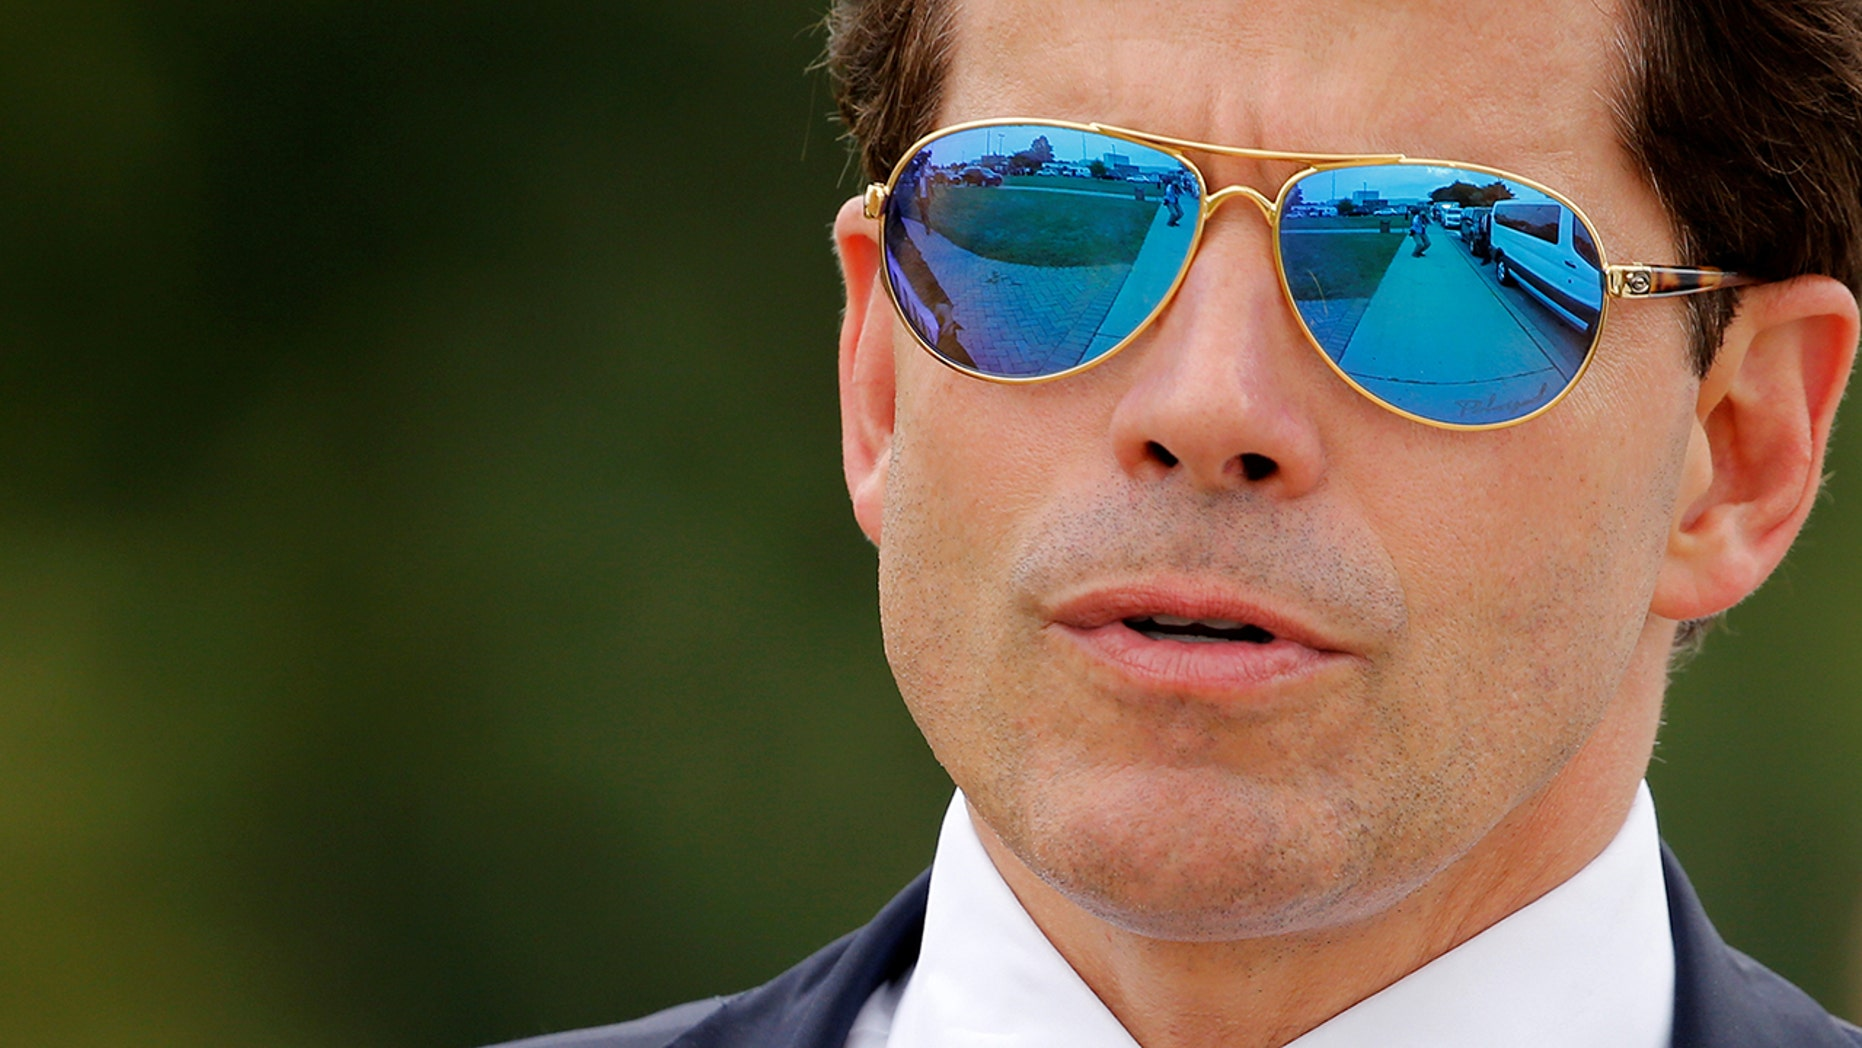 White House Communications Director Anthony Scaramucci accompanies U.S. President Donald Trump for an event about his proposed U.S. government effort against the street gang Mara Salvatrucha, or MS-13, with a gathering of federal, state and local law enforcement officials in Brentwood, New York, U.S. July 28, 2017.